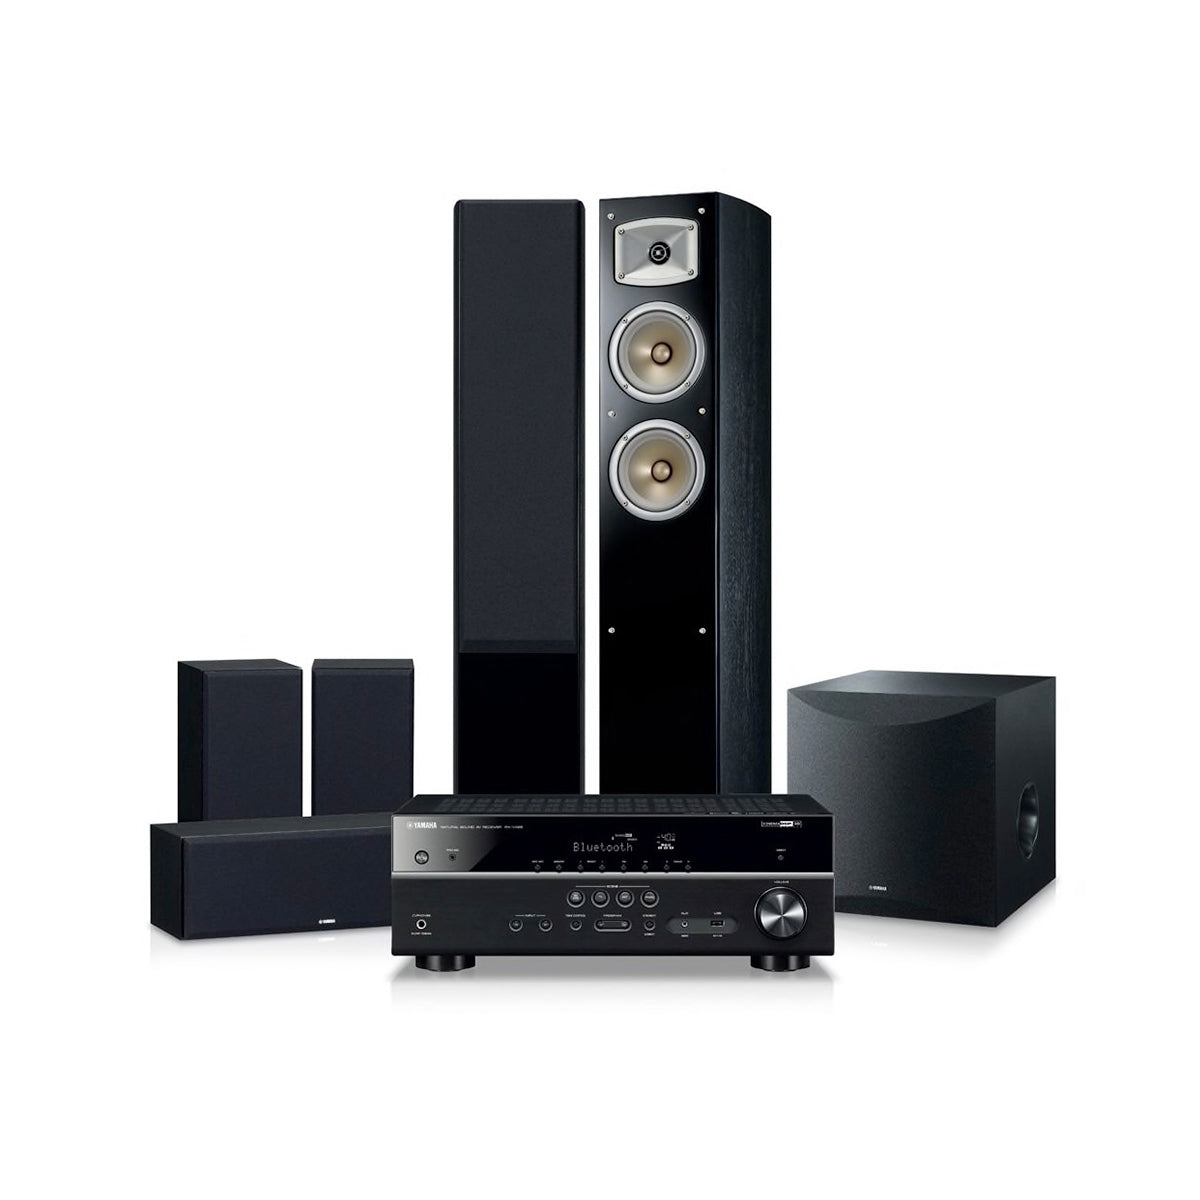 Yamaha Blockbuster 5500 Home Theatre System